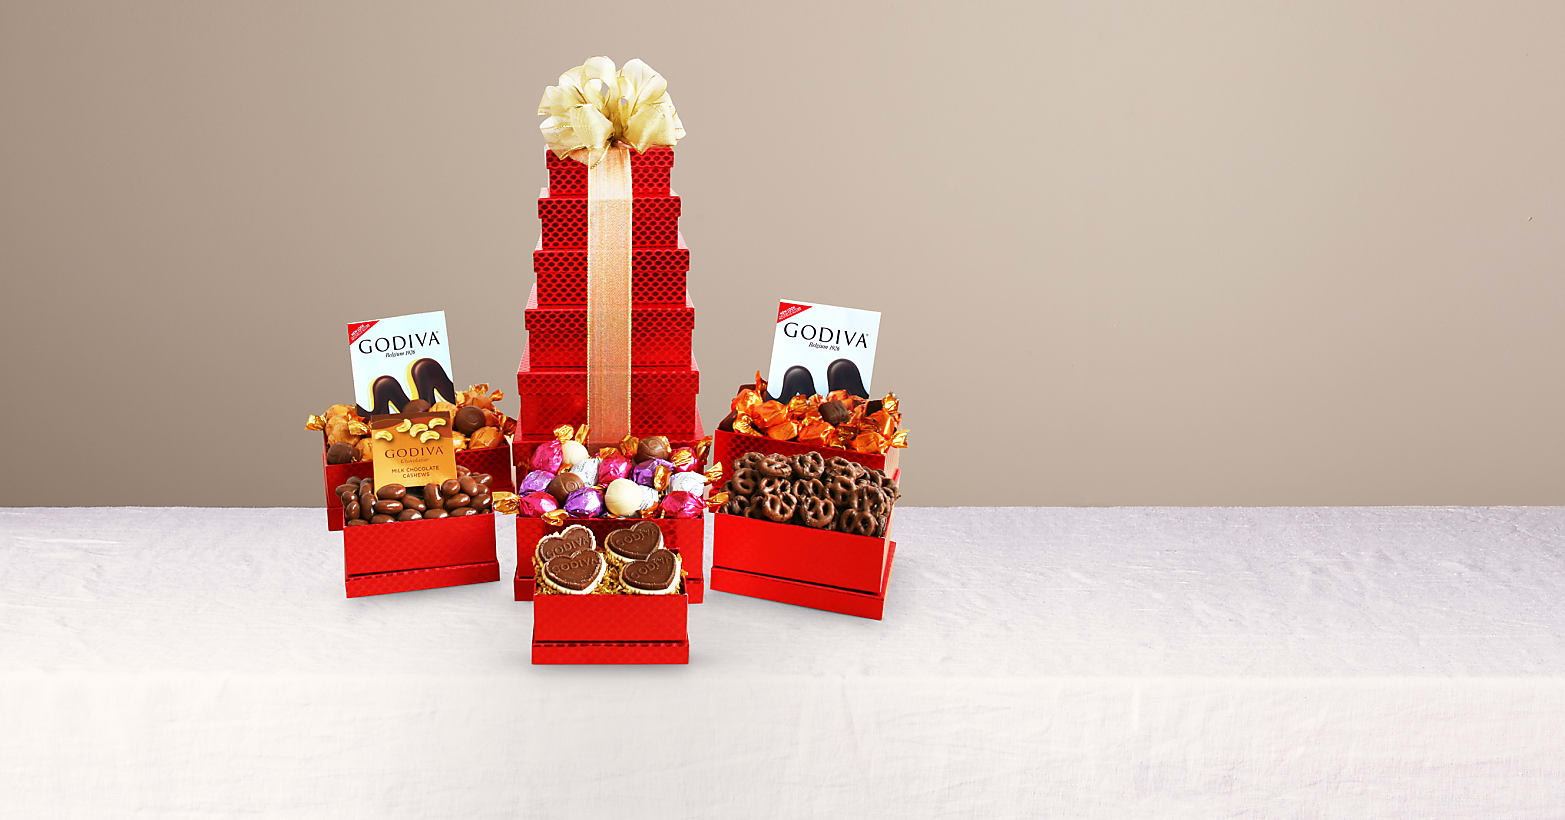 Godiva Chocolate Tower for Lovers